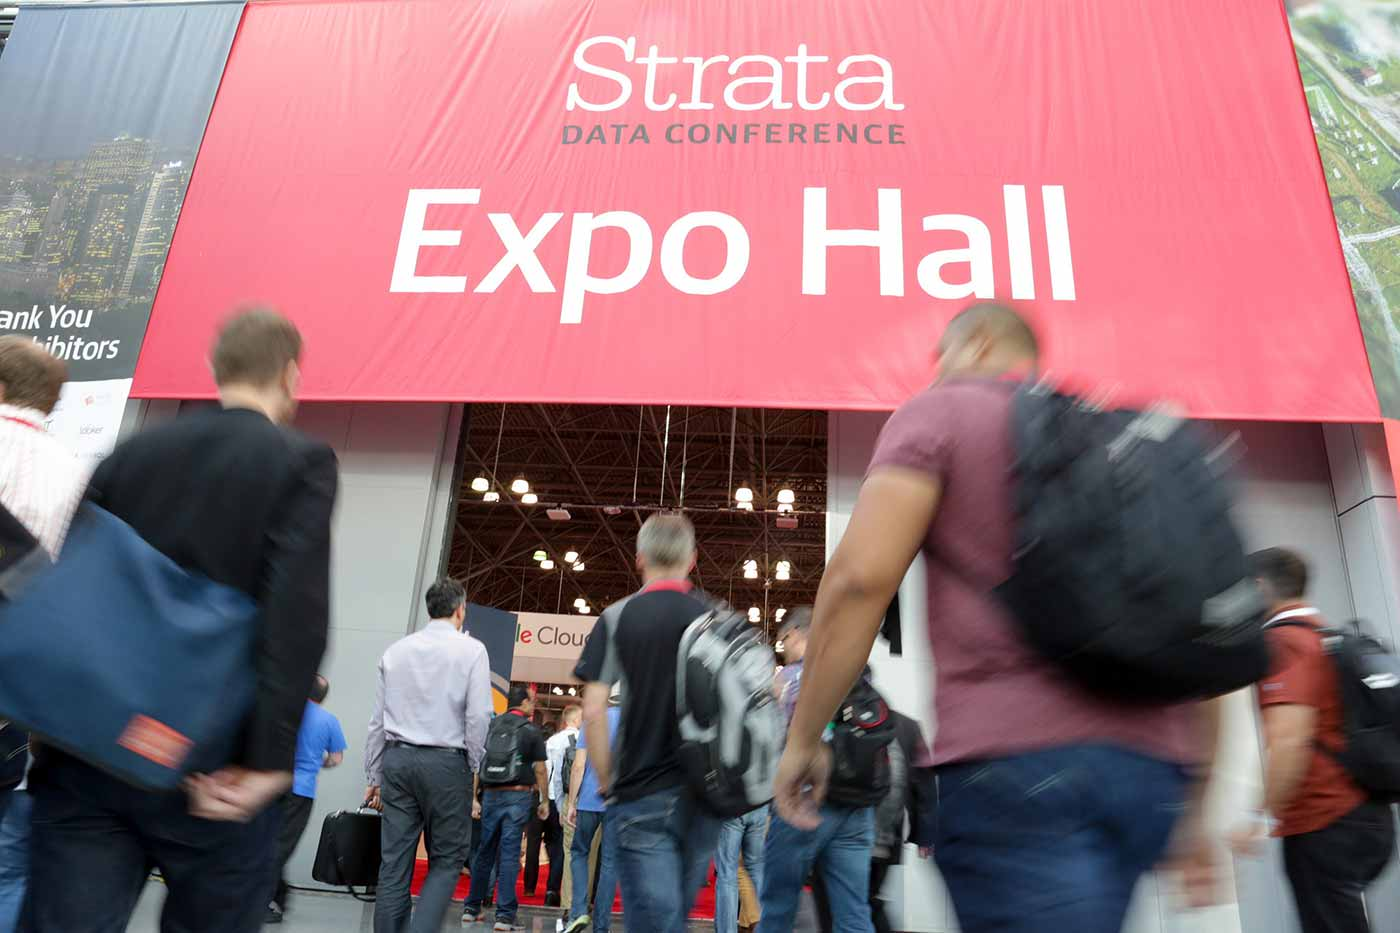 Strata Data Conference in New York